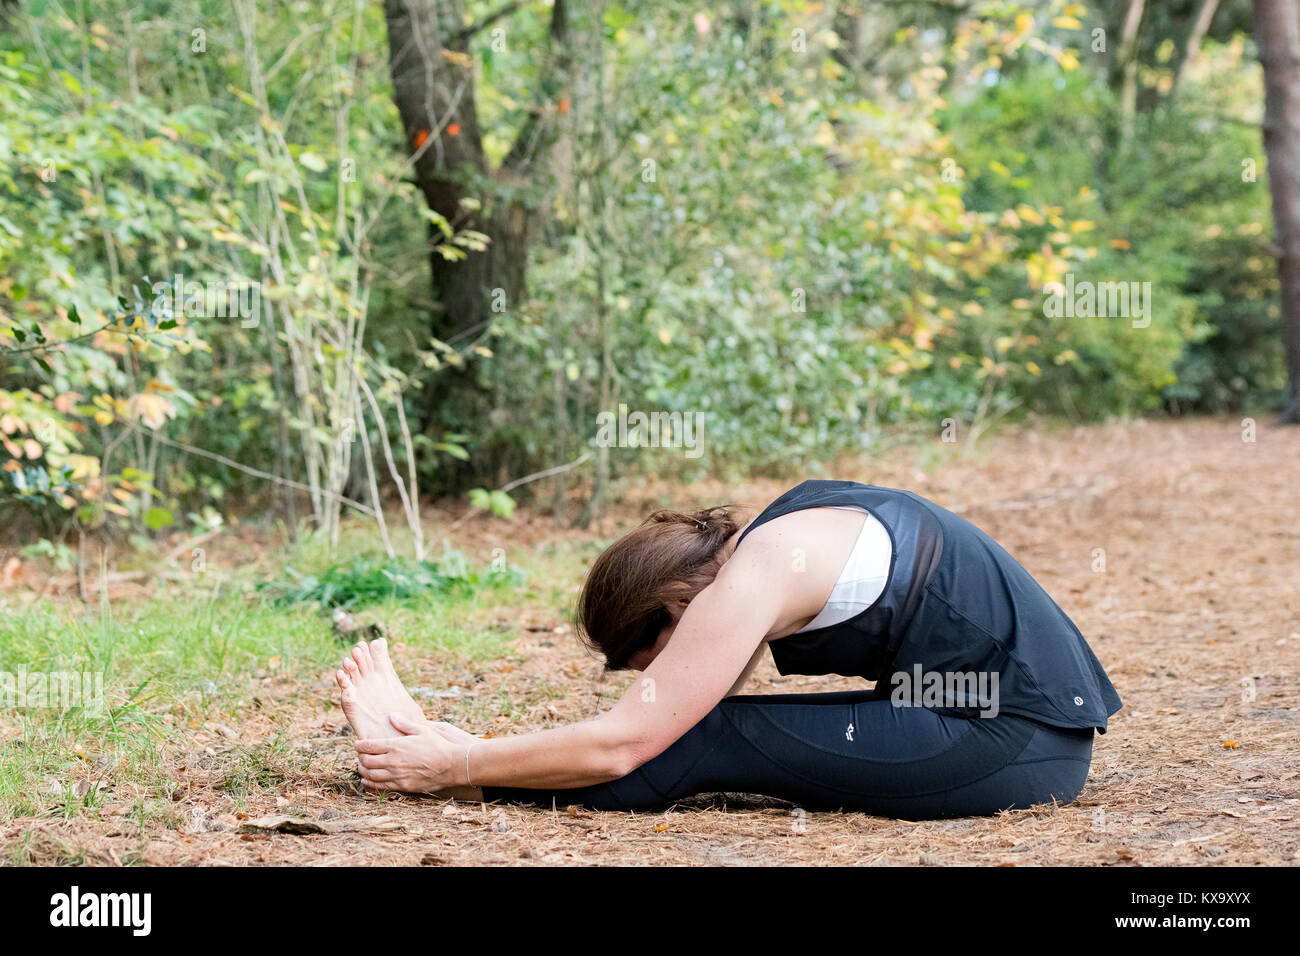 'Woman practicing yoga in the sand - Seated forward bend - Paschimottanasana - Autumn day' - Stock Image